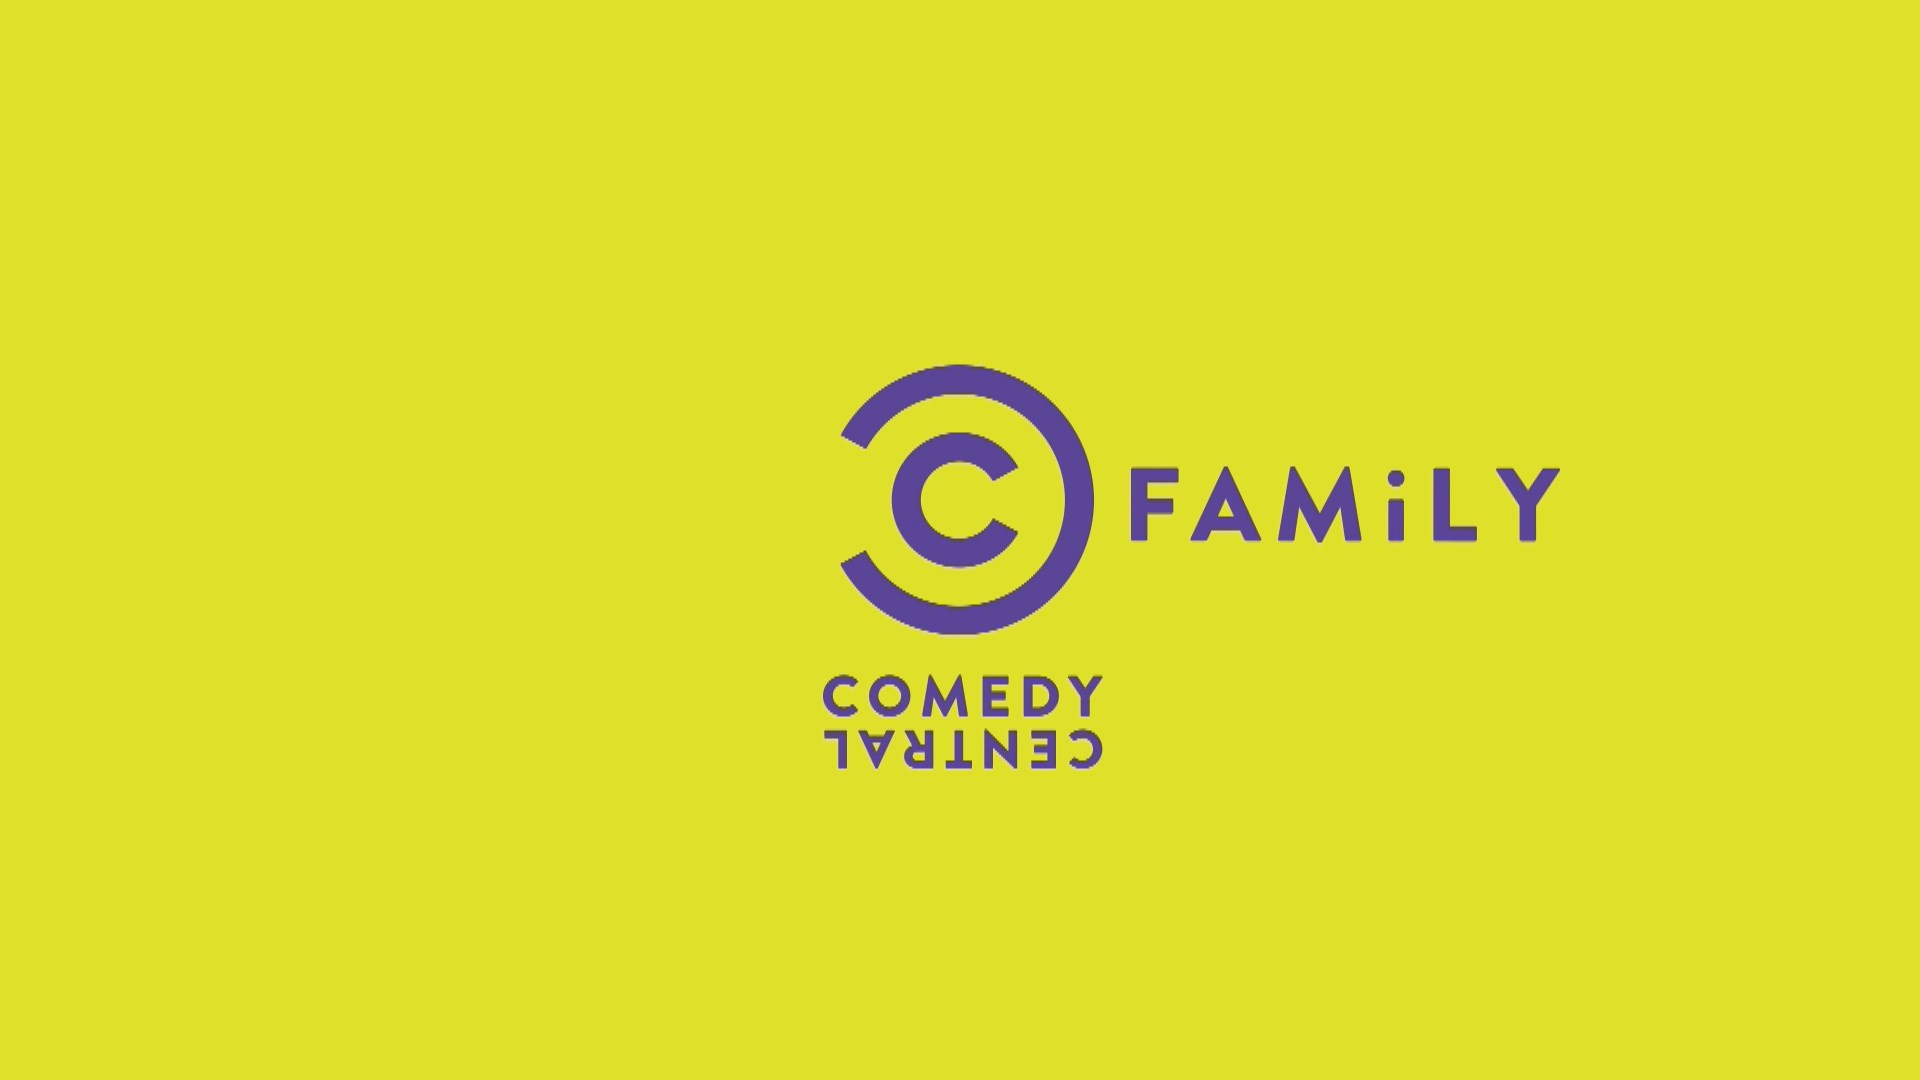 comedy_central_family_cover.jpg